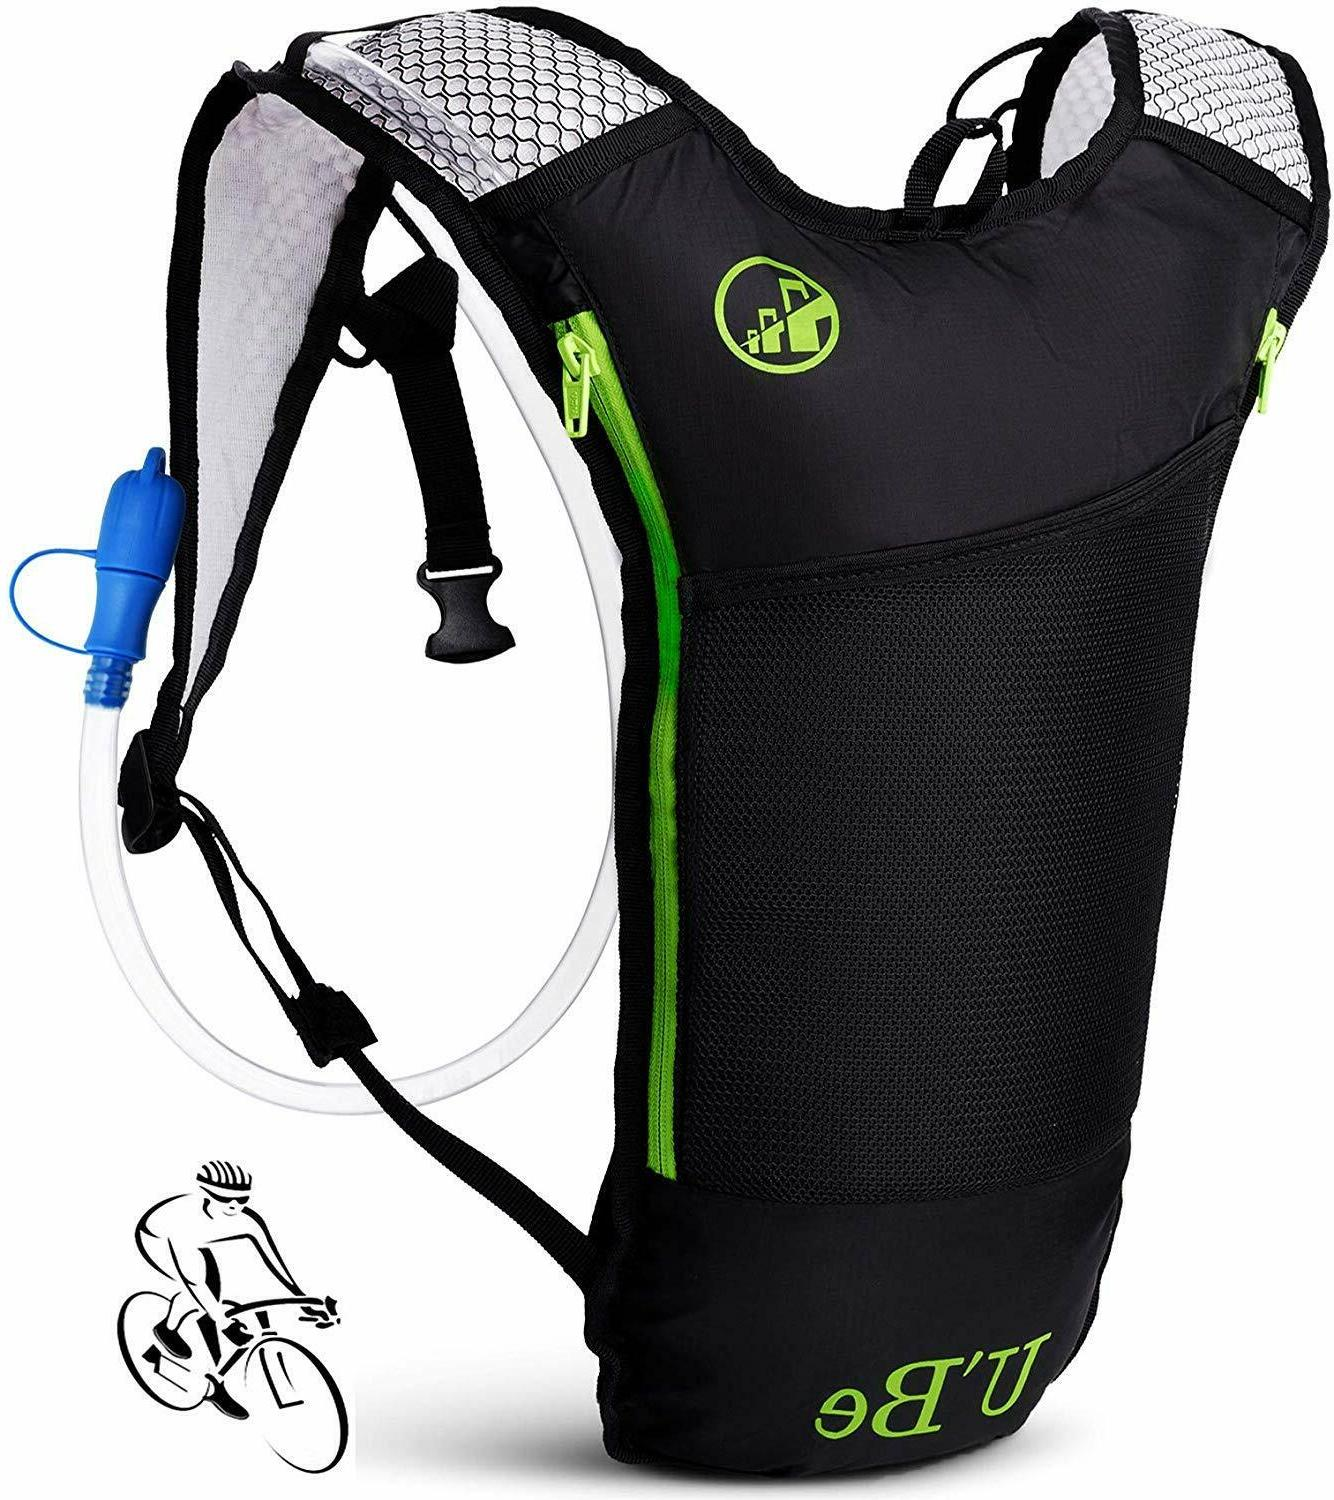 hydration water backpack bladder hiking camping pack